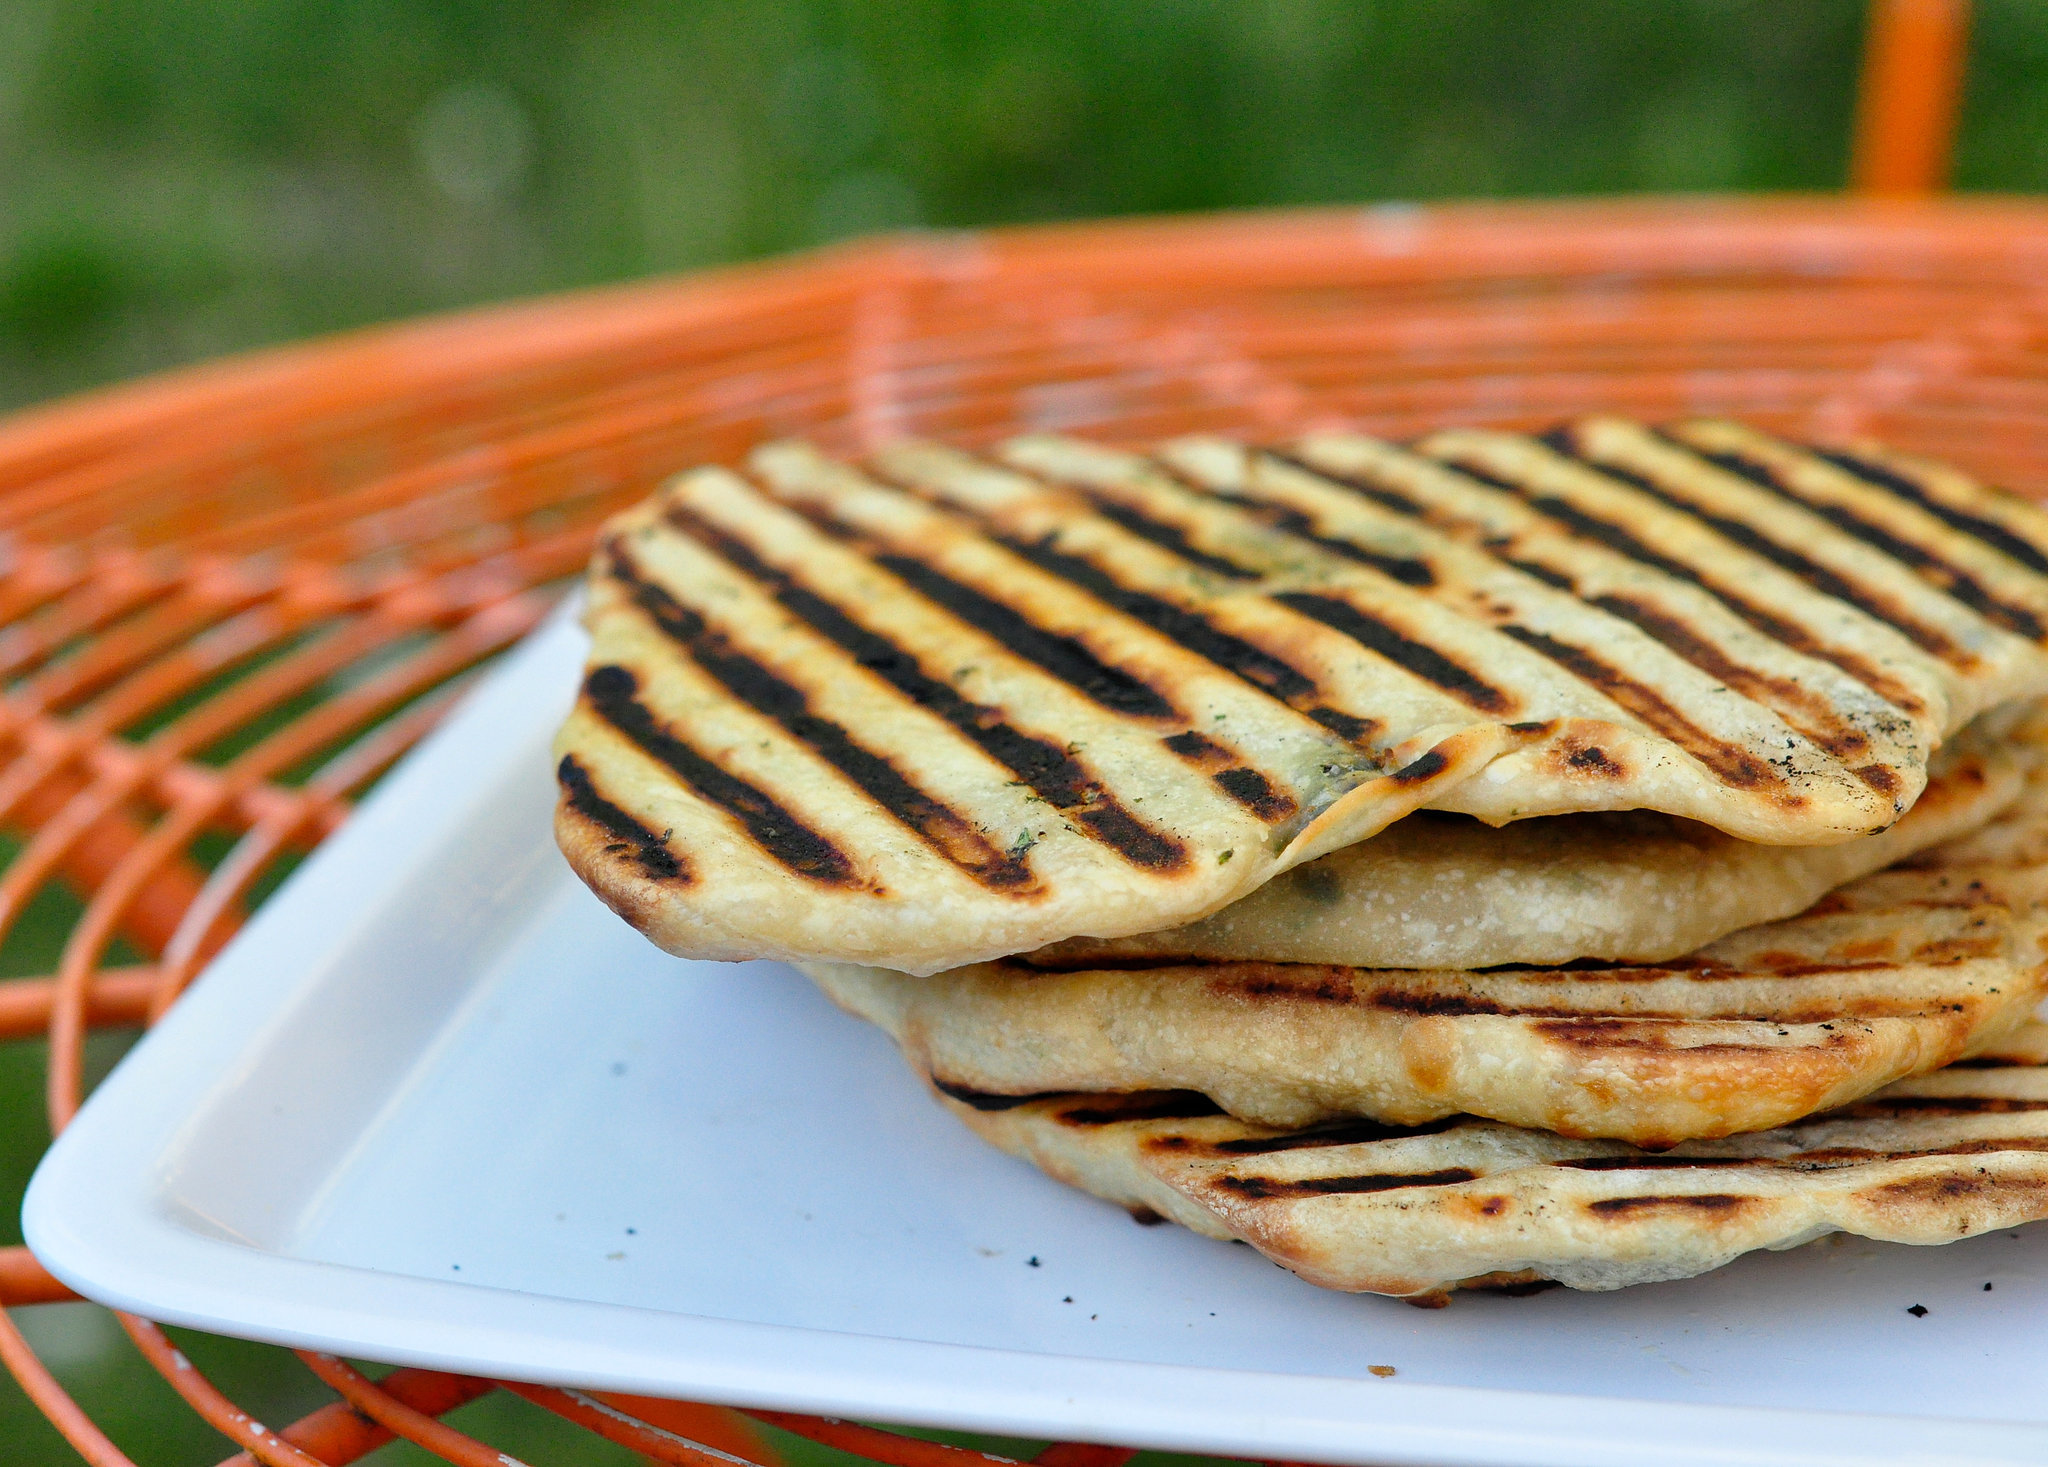 Grilled Flatbread Stuffed With Herbs and Cheese